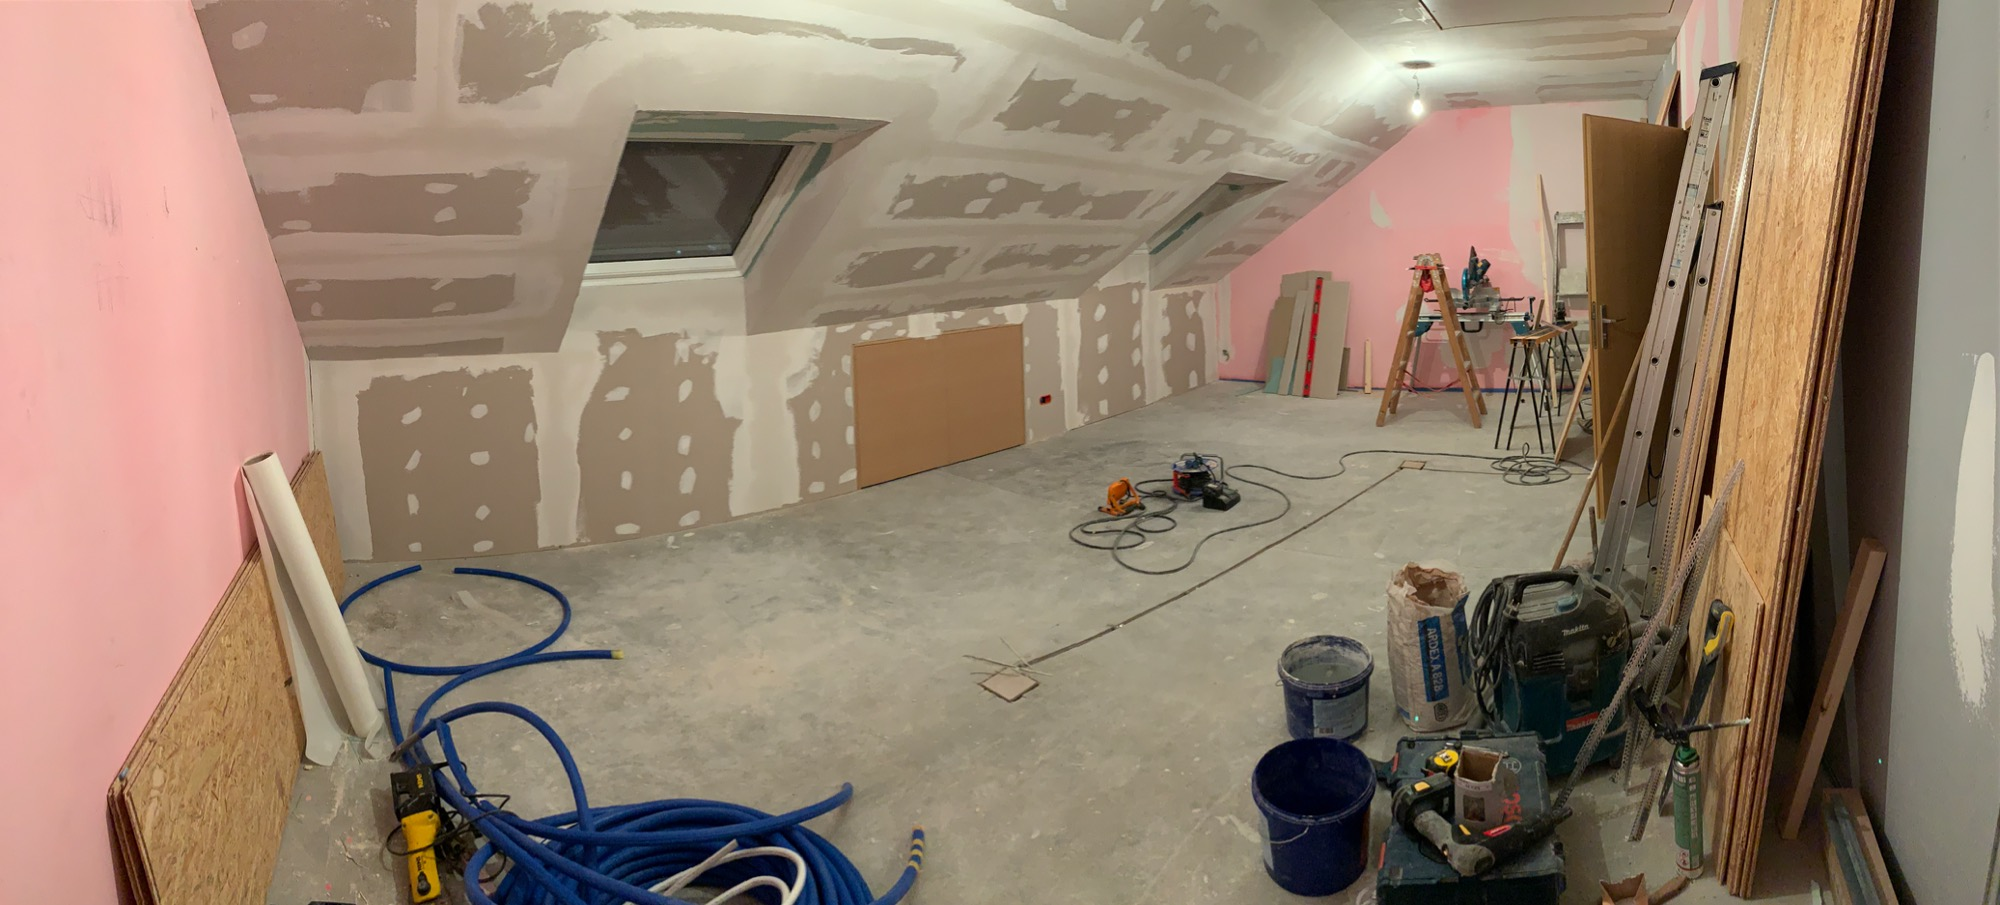 Work in progress - Renovations on new photography studio